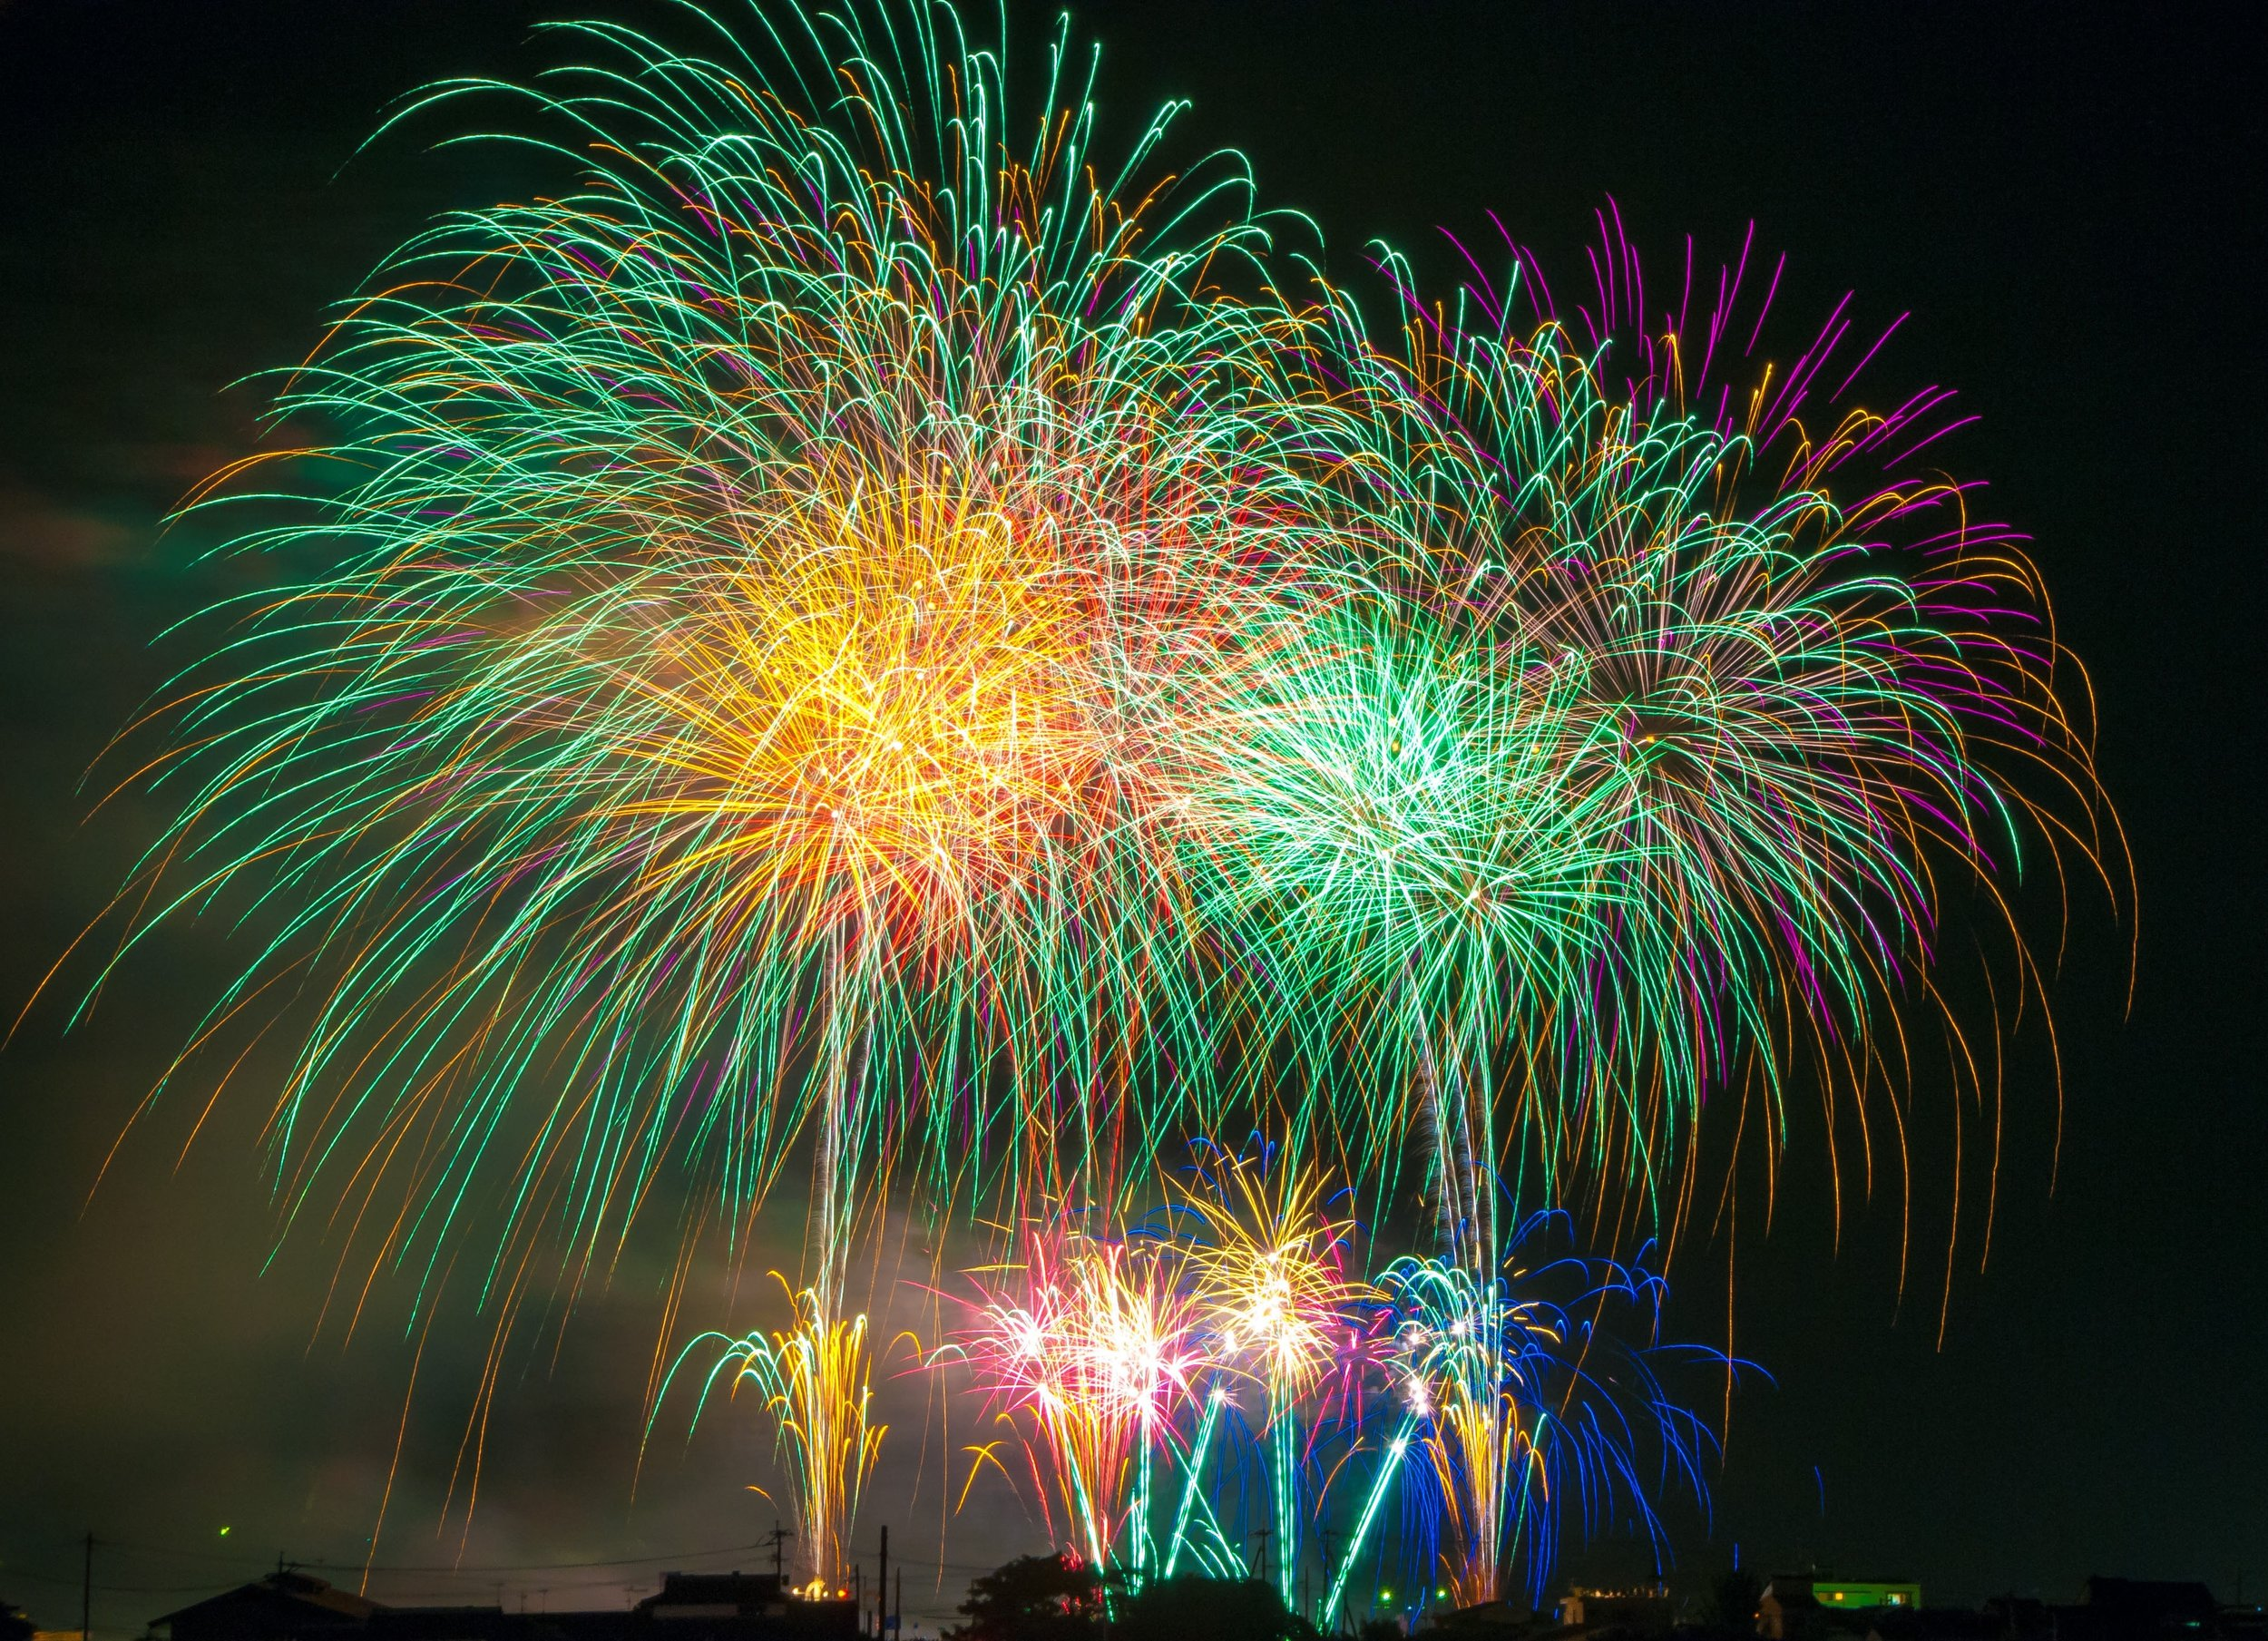 A colourful explosion